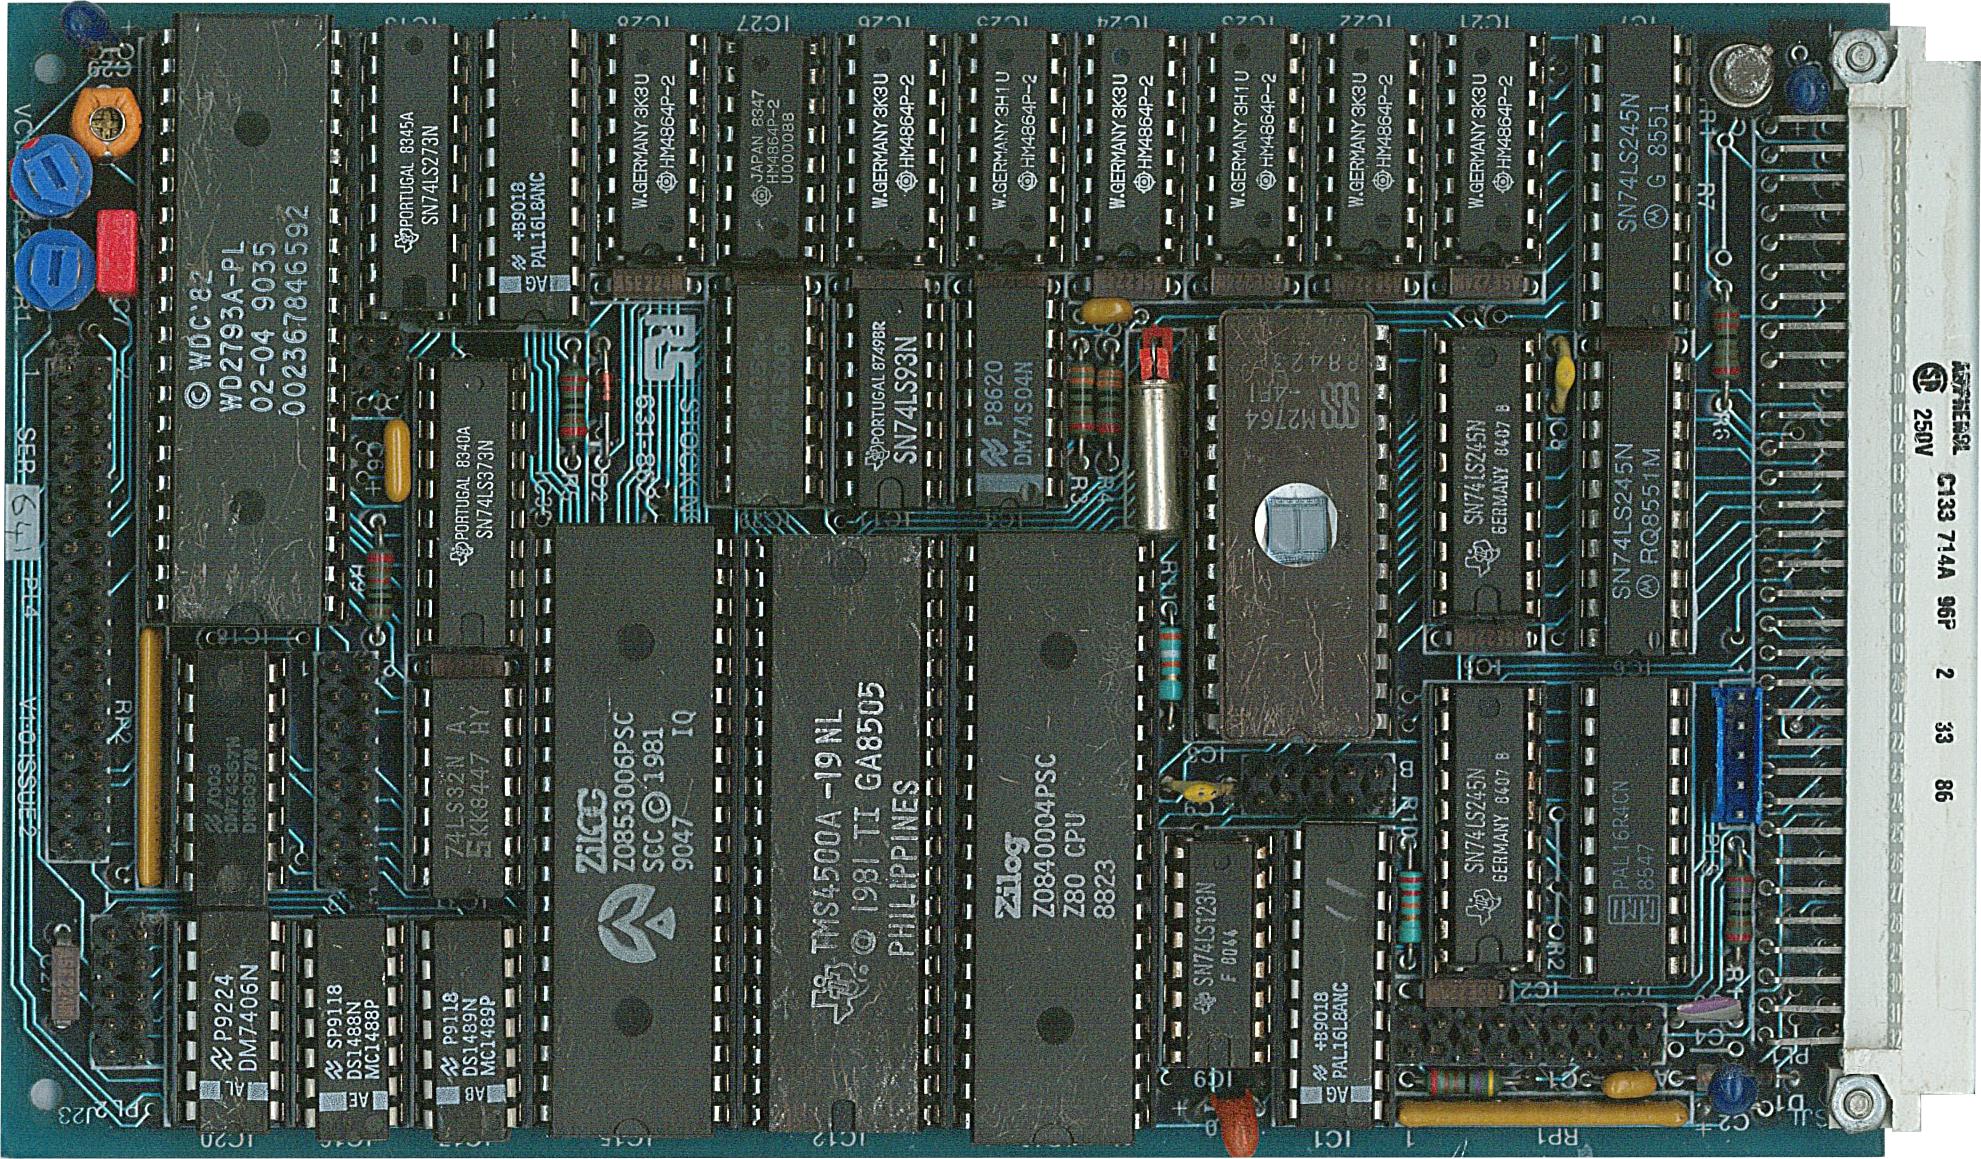 File:STEbus Z80 and FDC, with 64K DRAM, and SCC on 100x160mm